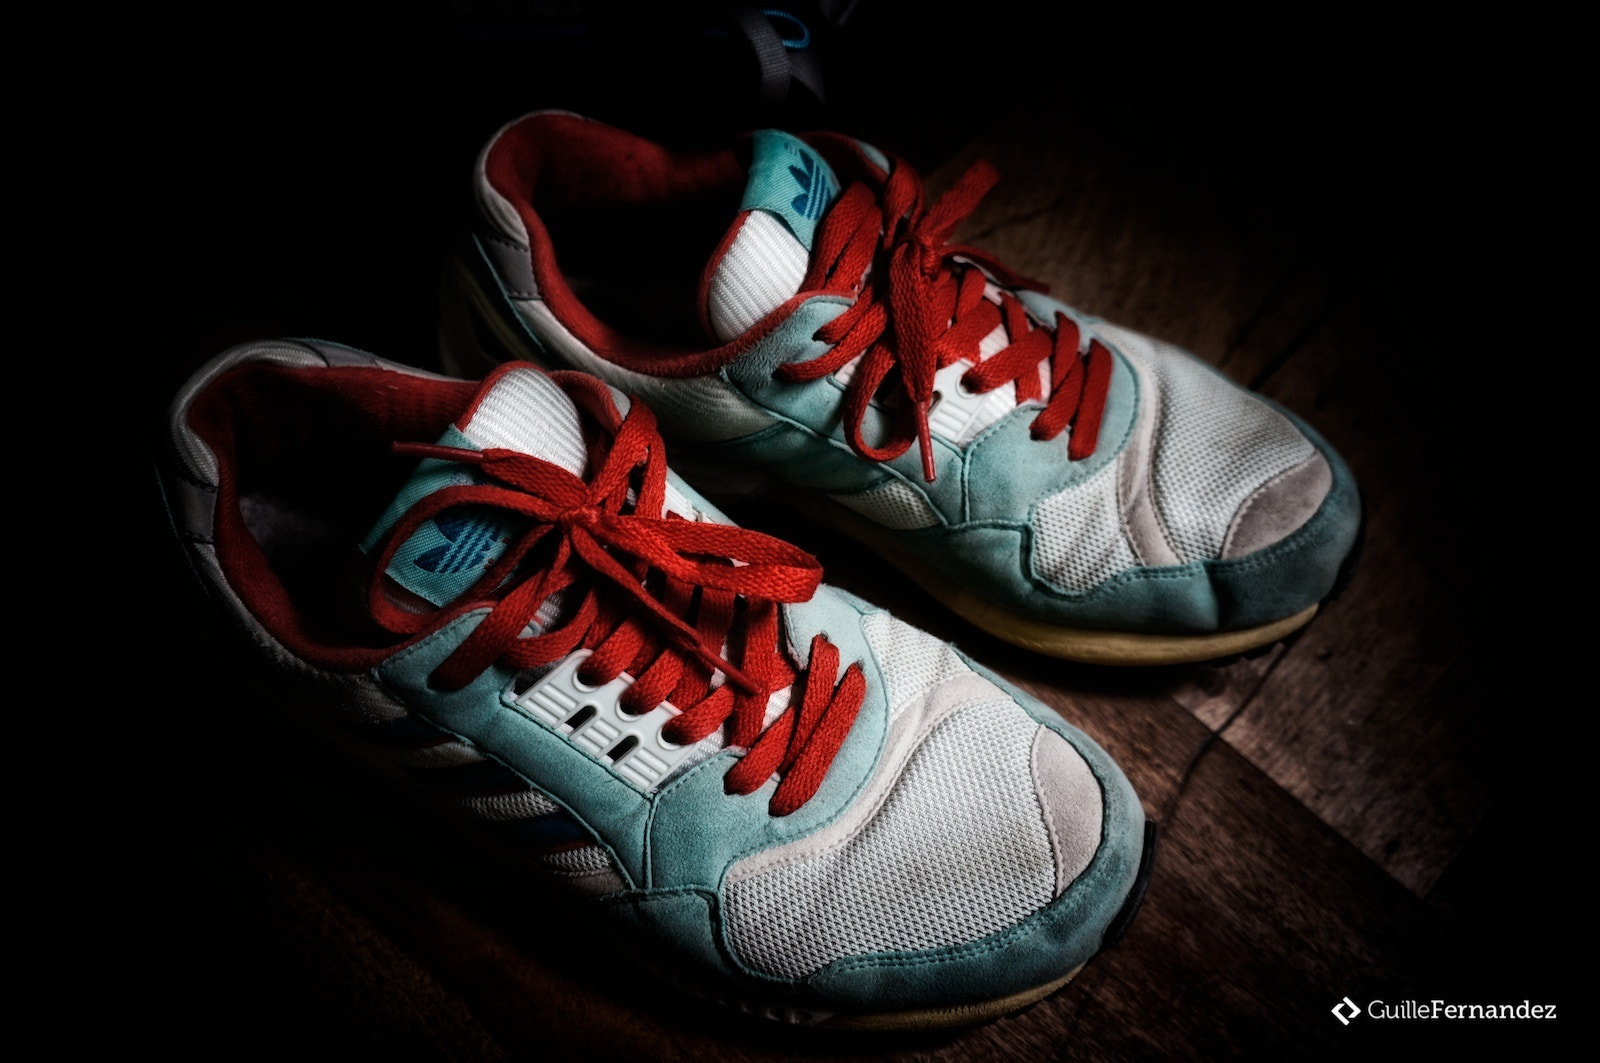 Photograph Old Sneaker by Guillermo Fernandez Brombley on 500px